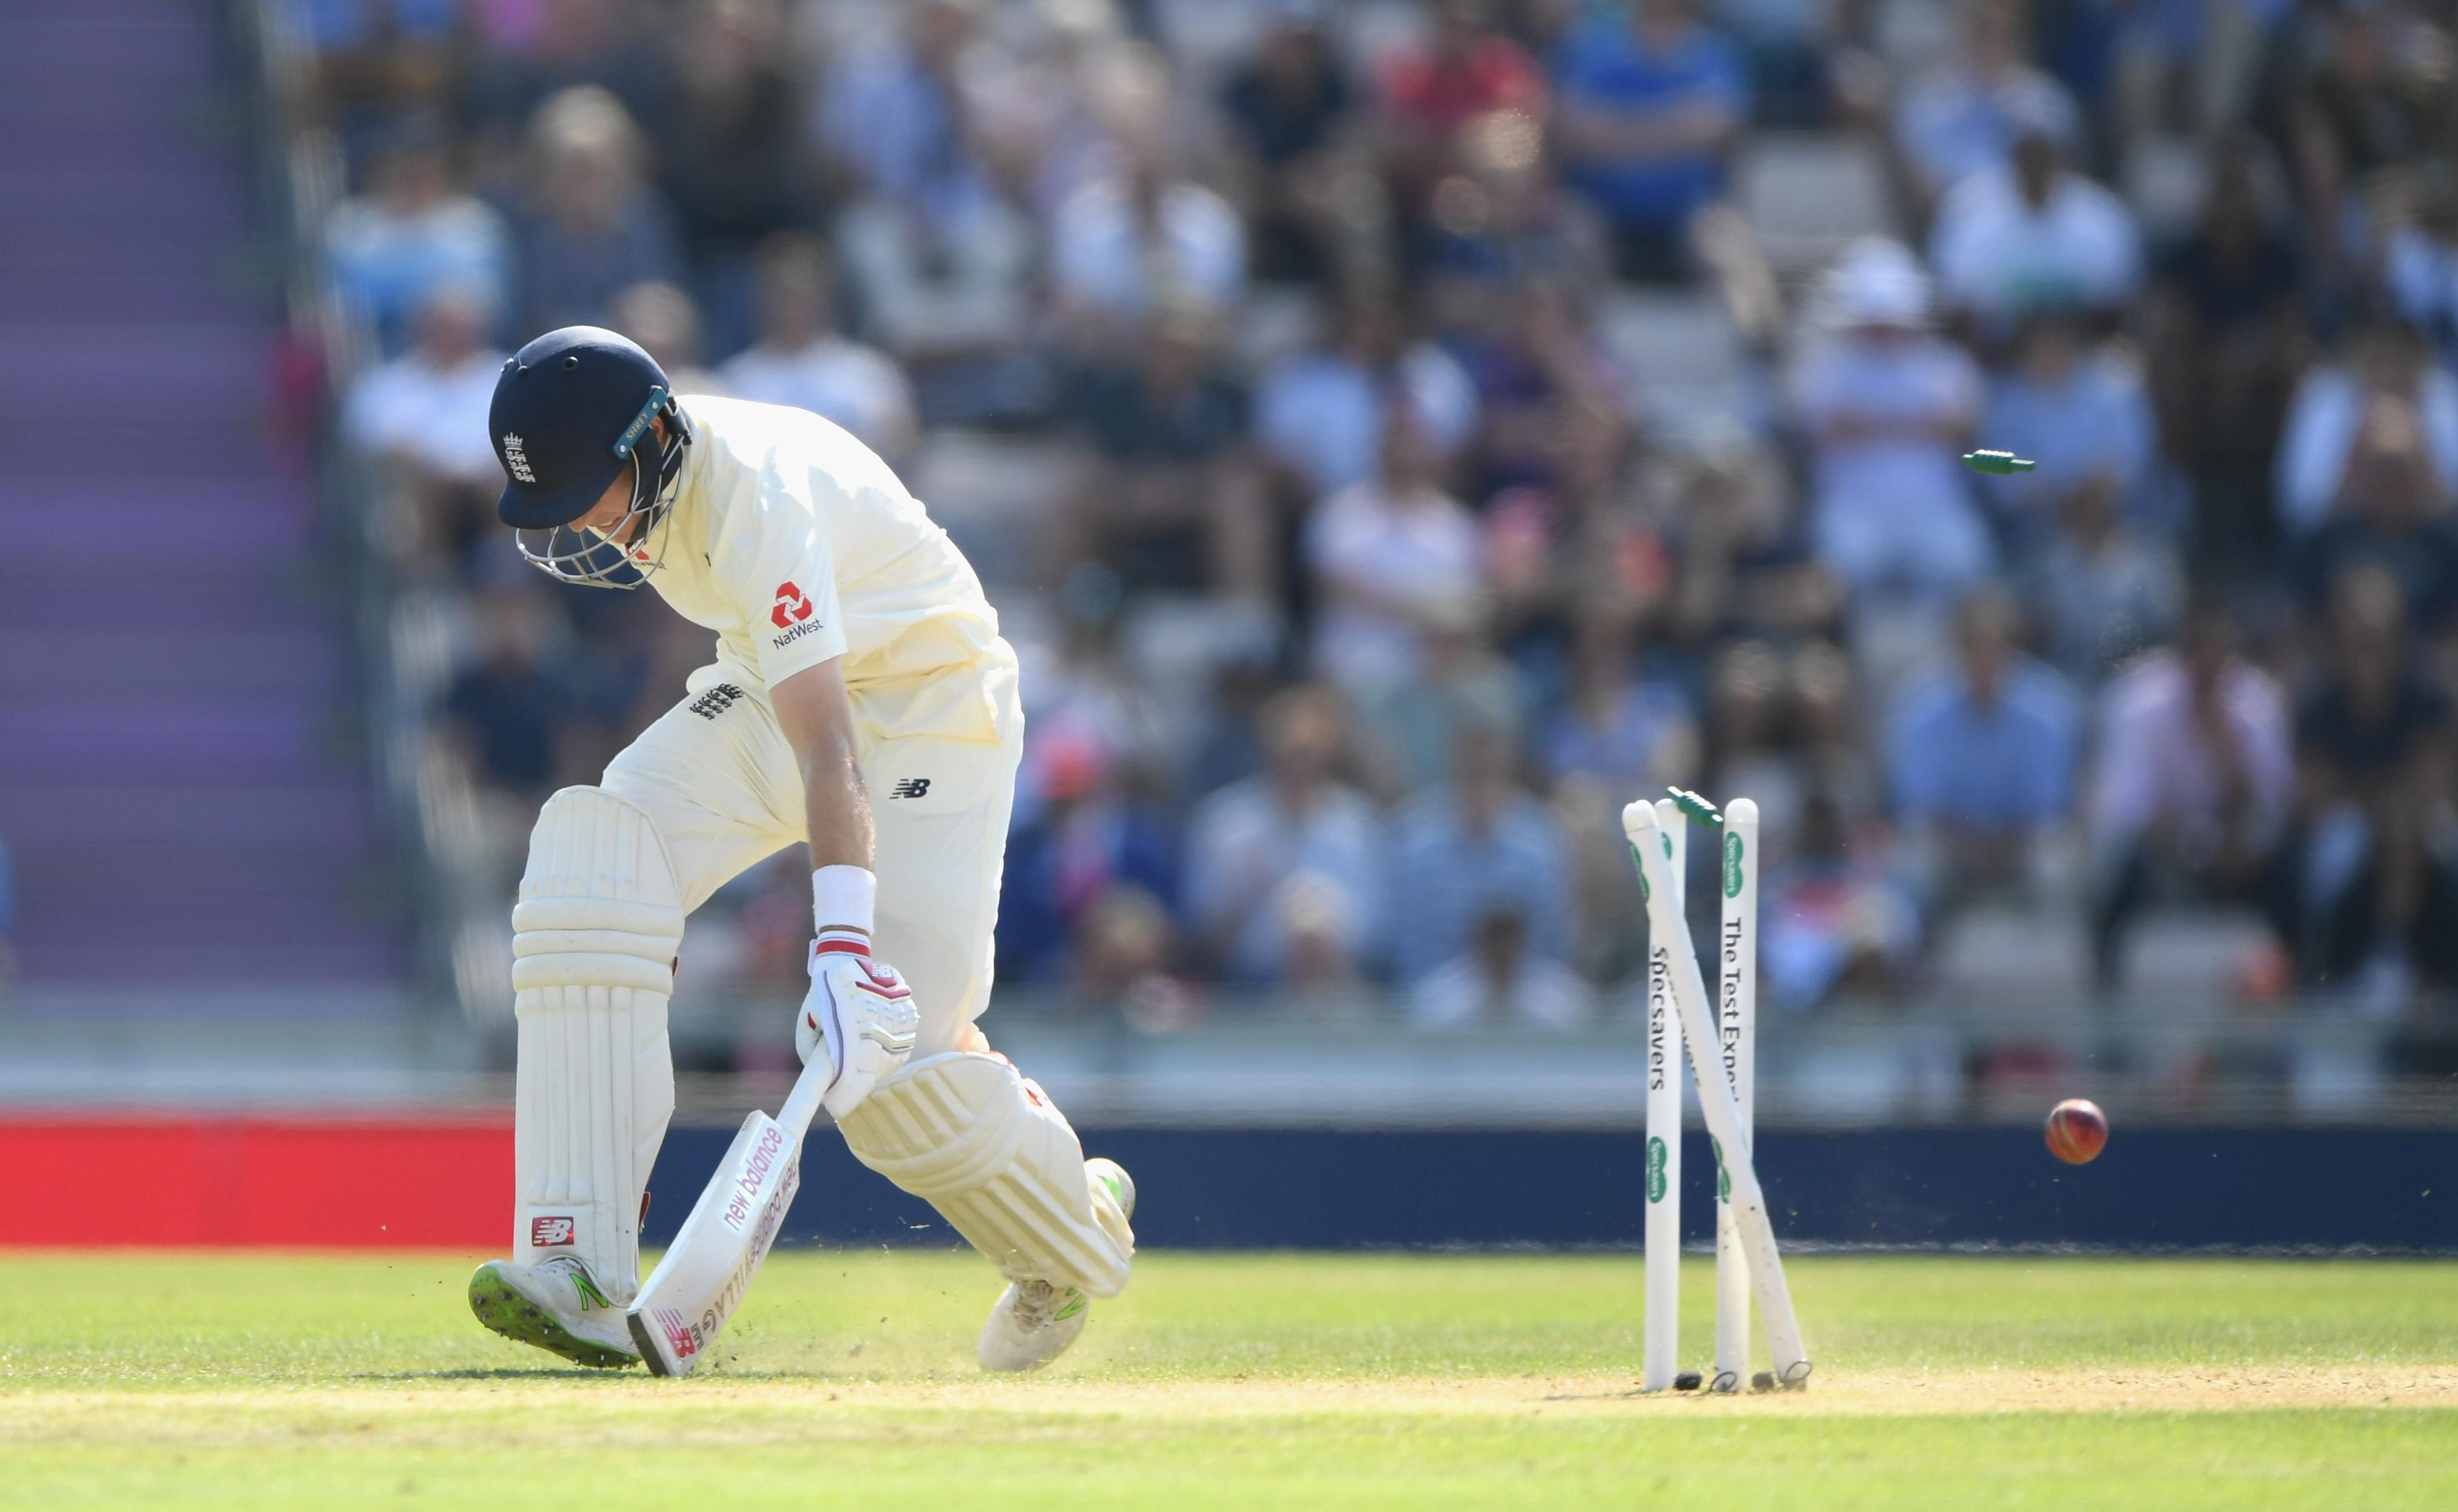 Joe Root was run-out two short of his 50 in the second innings